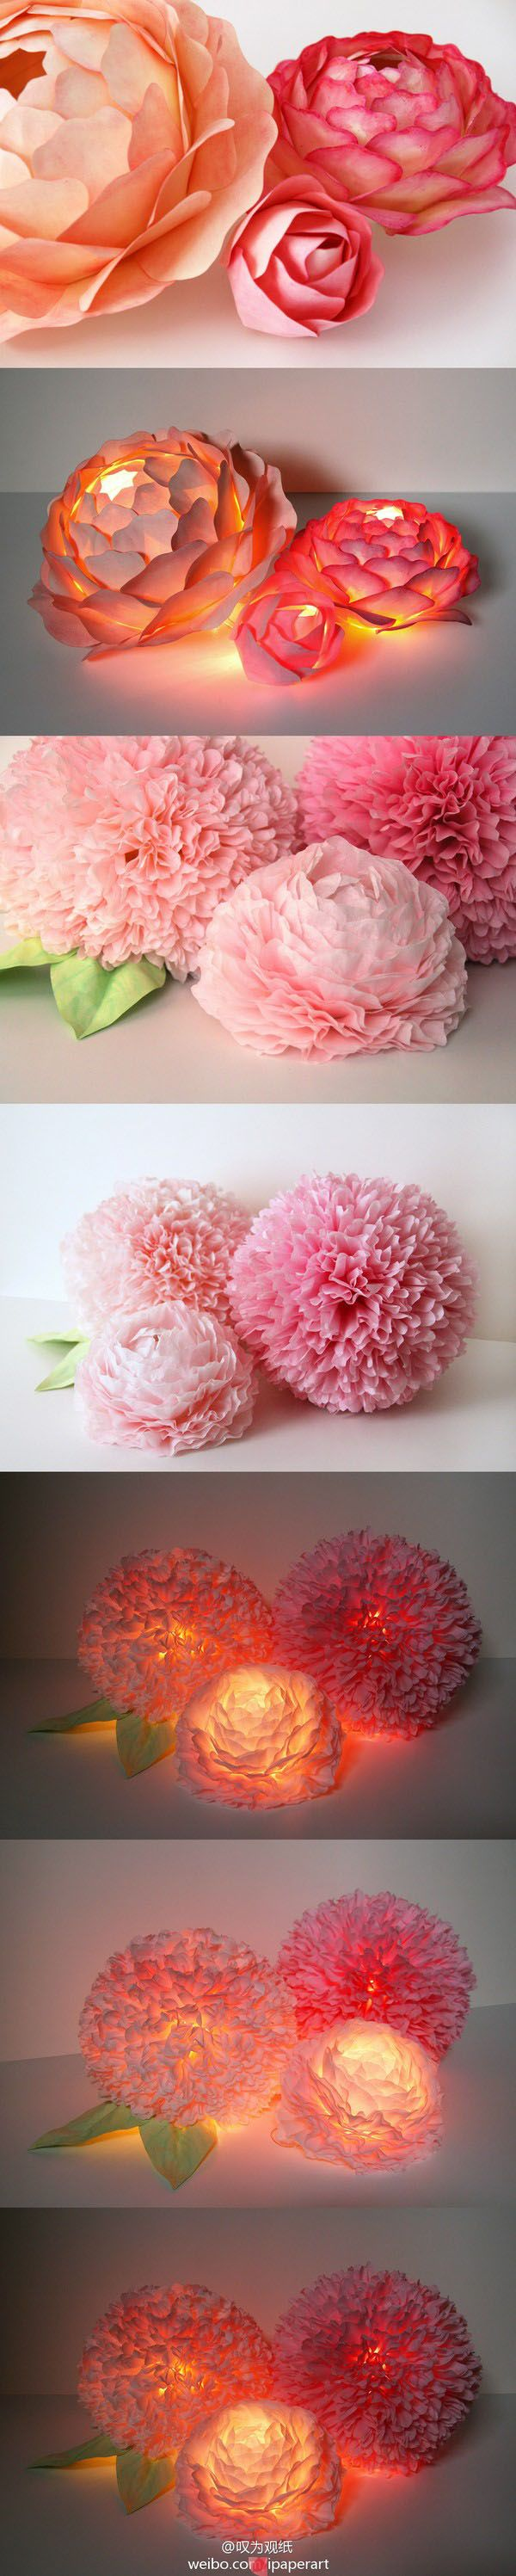 Mesmerizing diy handmade paper flower art projects to beautify your home diy handmade paper flower art mightylinksfo